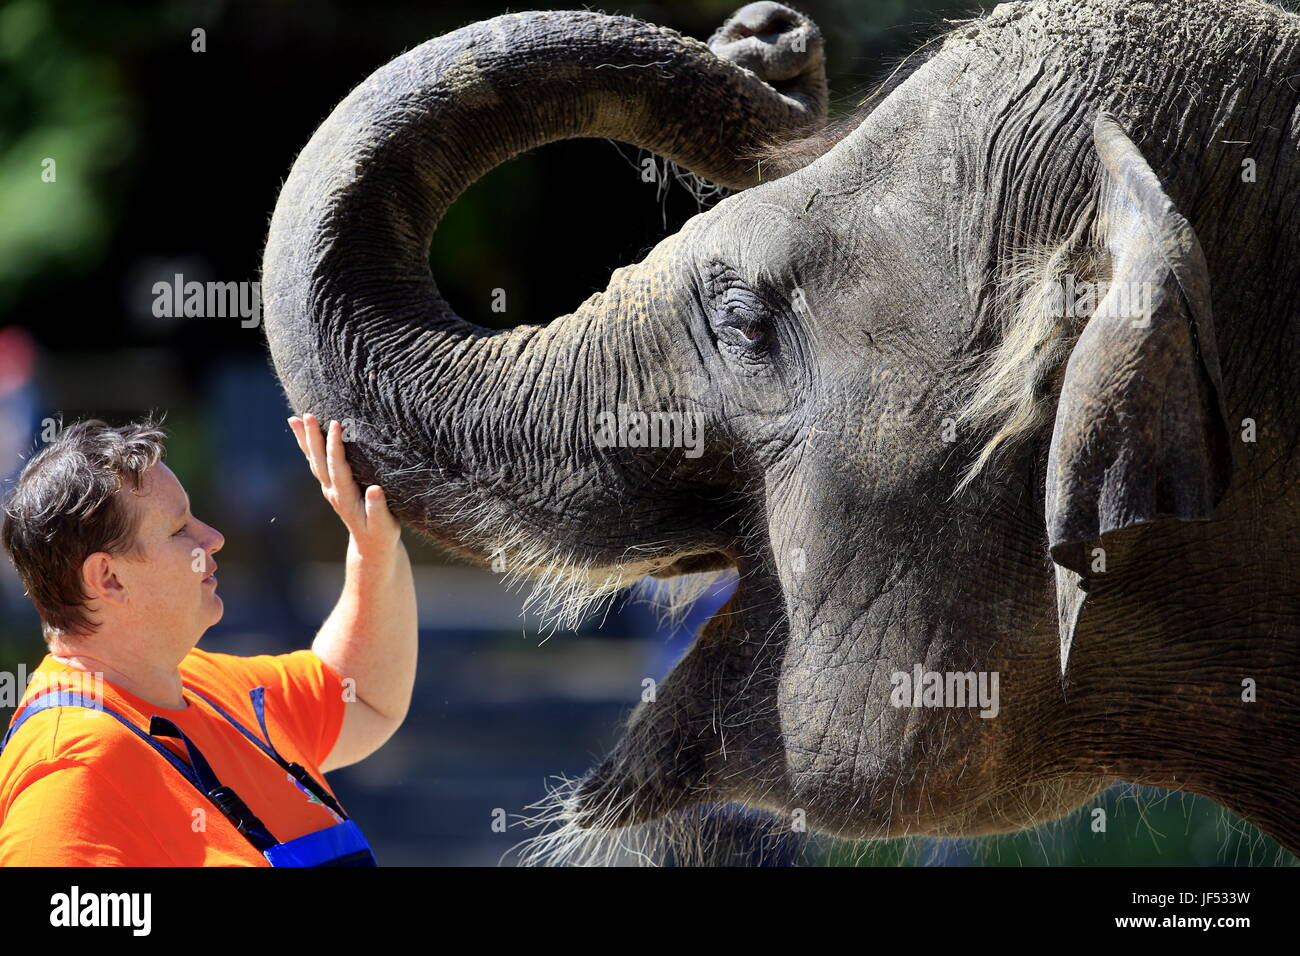 ROSTOV-ON-DON, RUSSIA – JUNE 28, 2017: Stroking an elephant at the Rostov-on-Don Zoo. Valery Matytsin/TASS - Stock Image